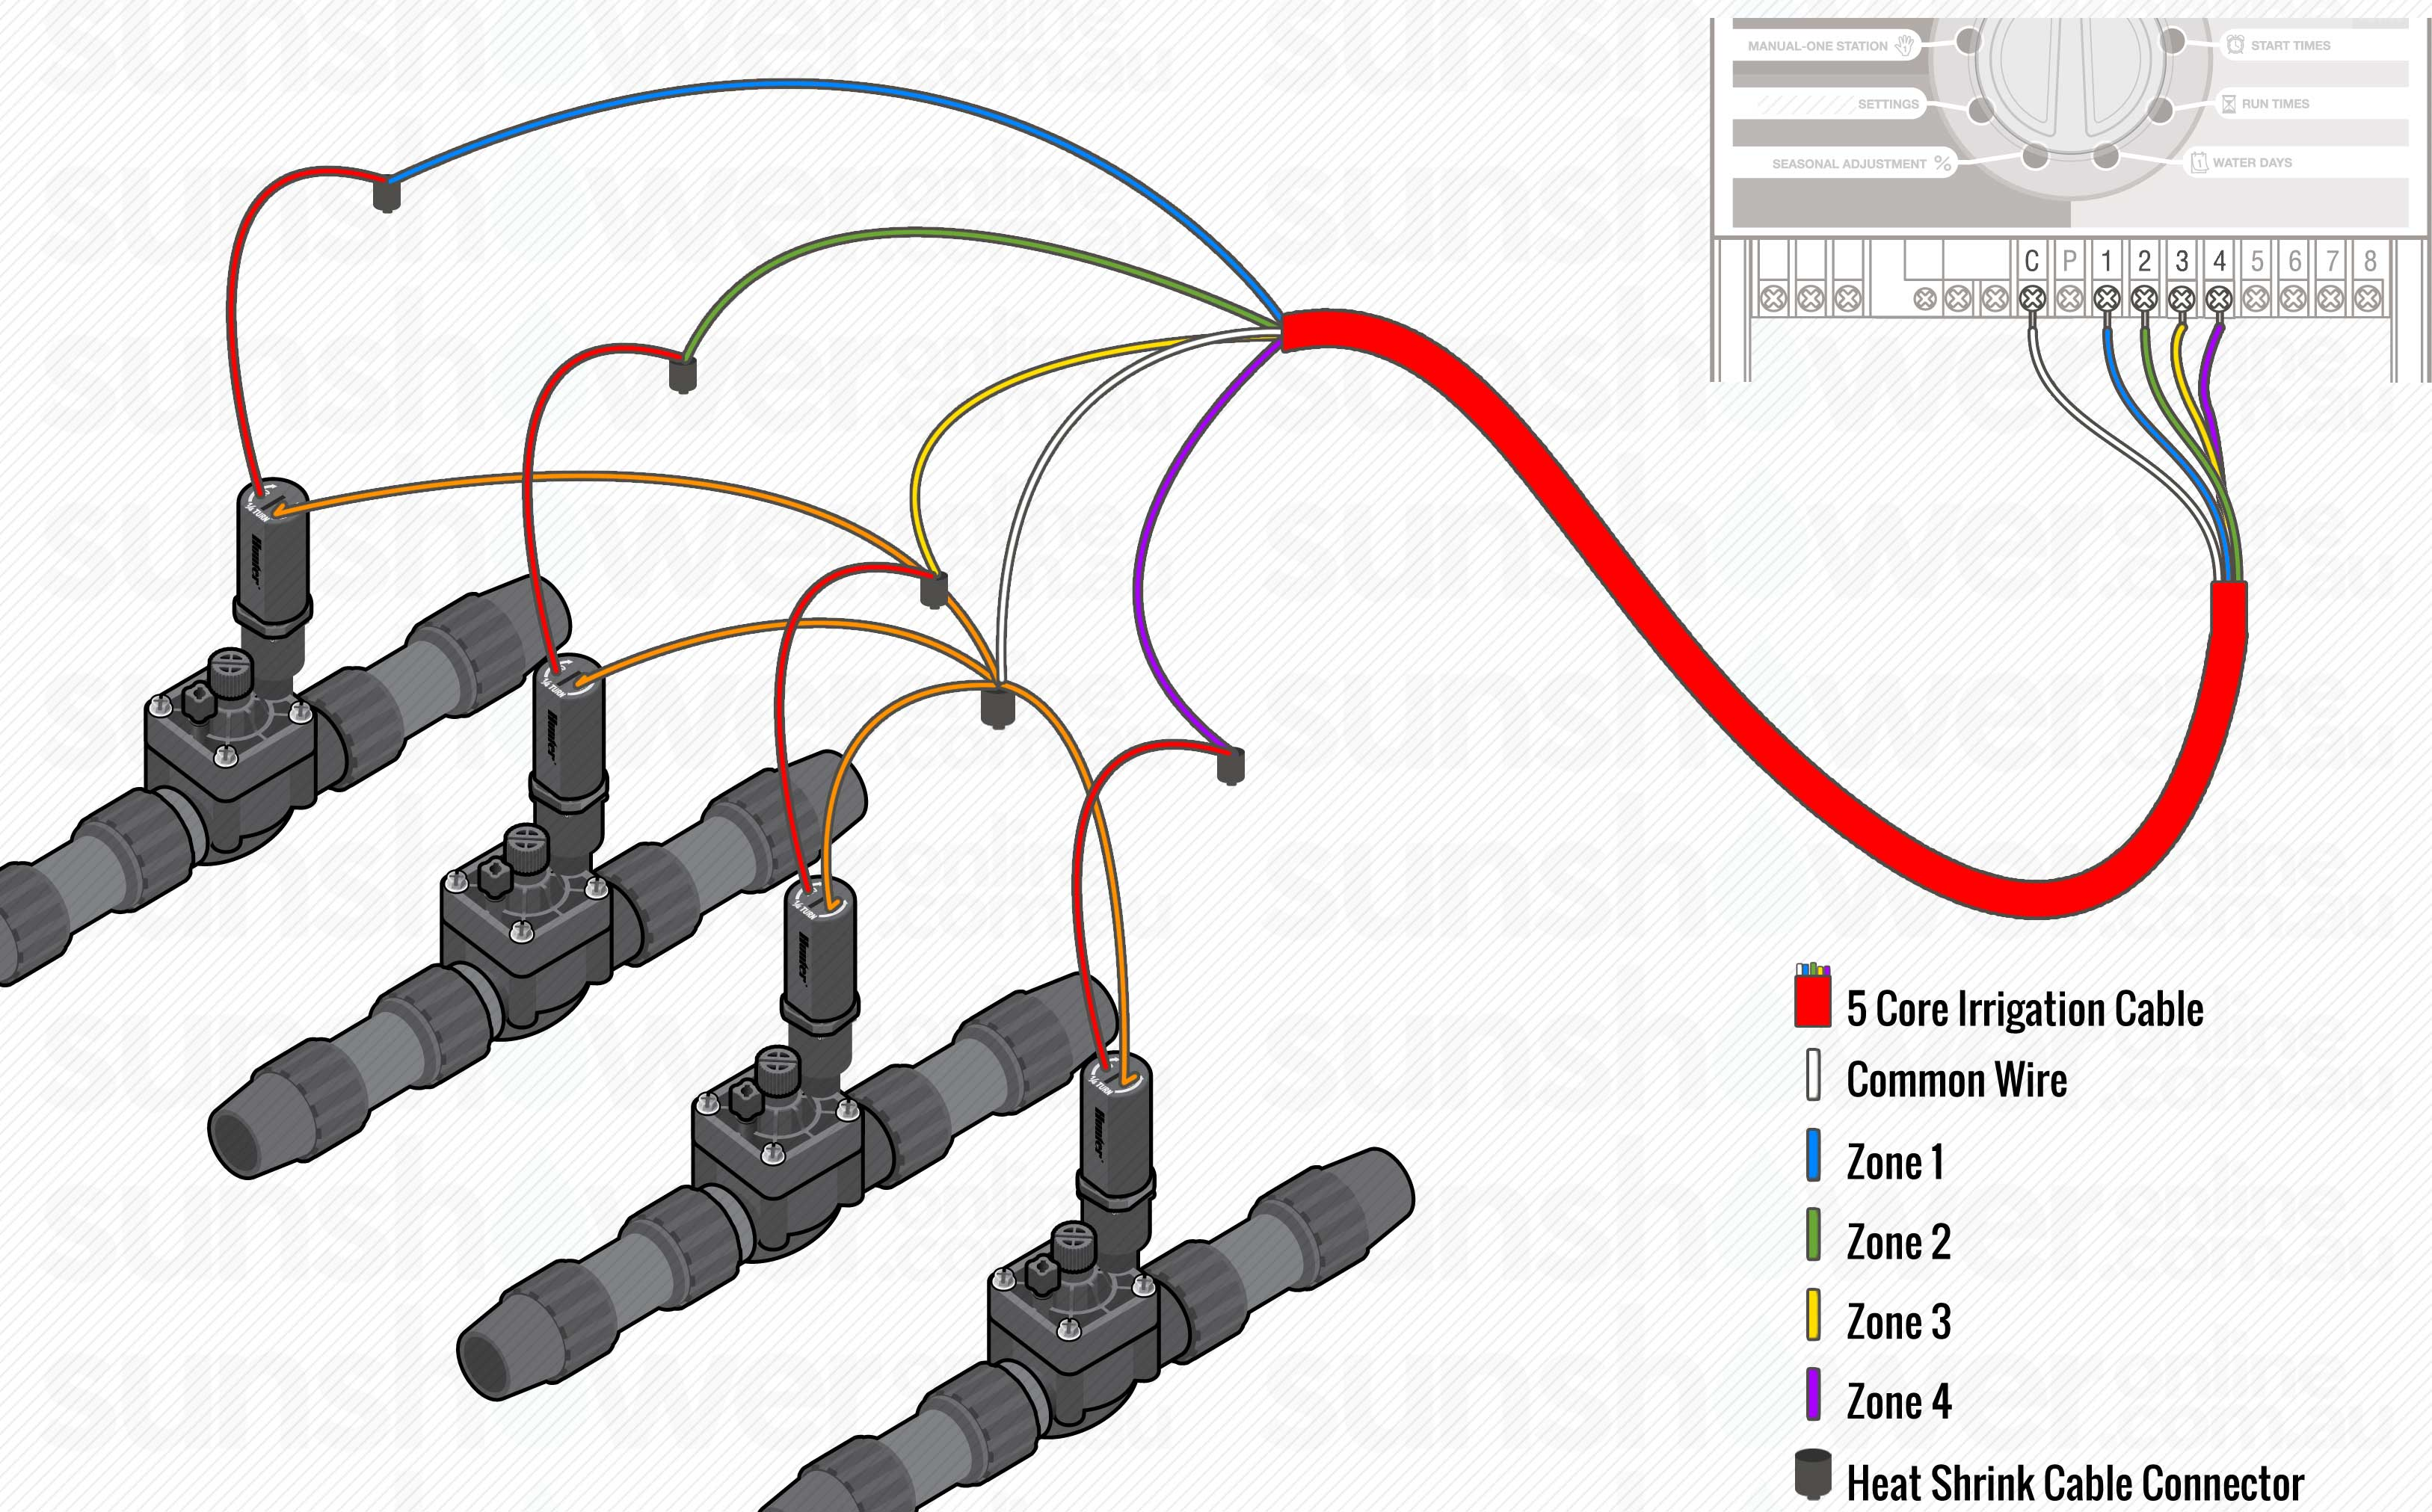 How to wire solenoid valves to an irrigation controller diagram